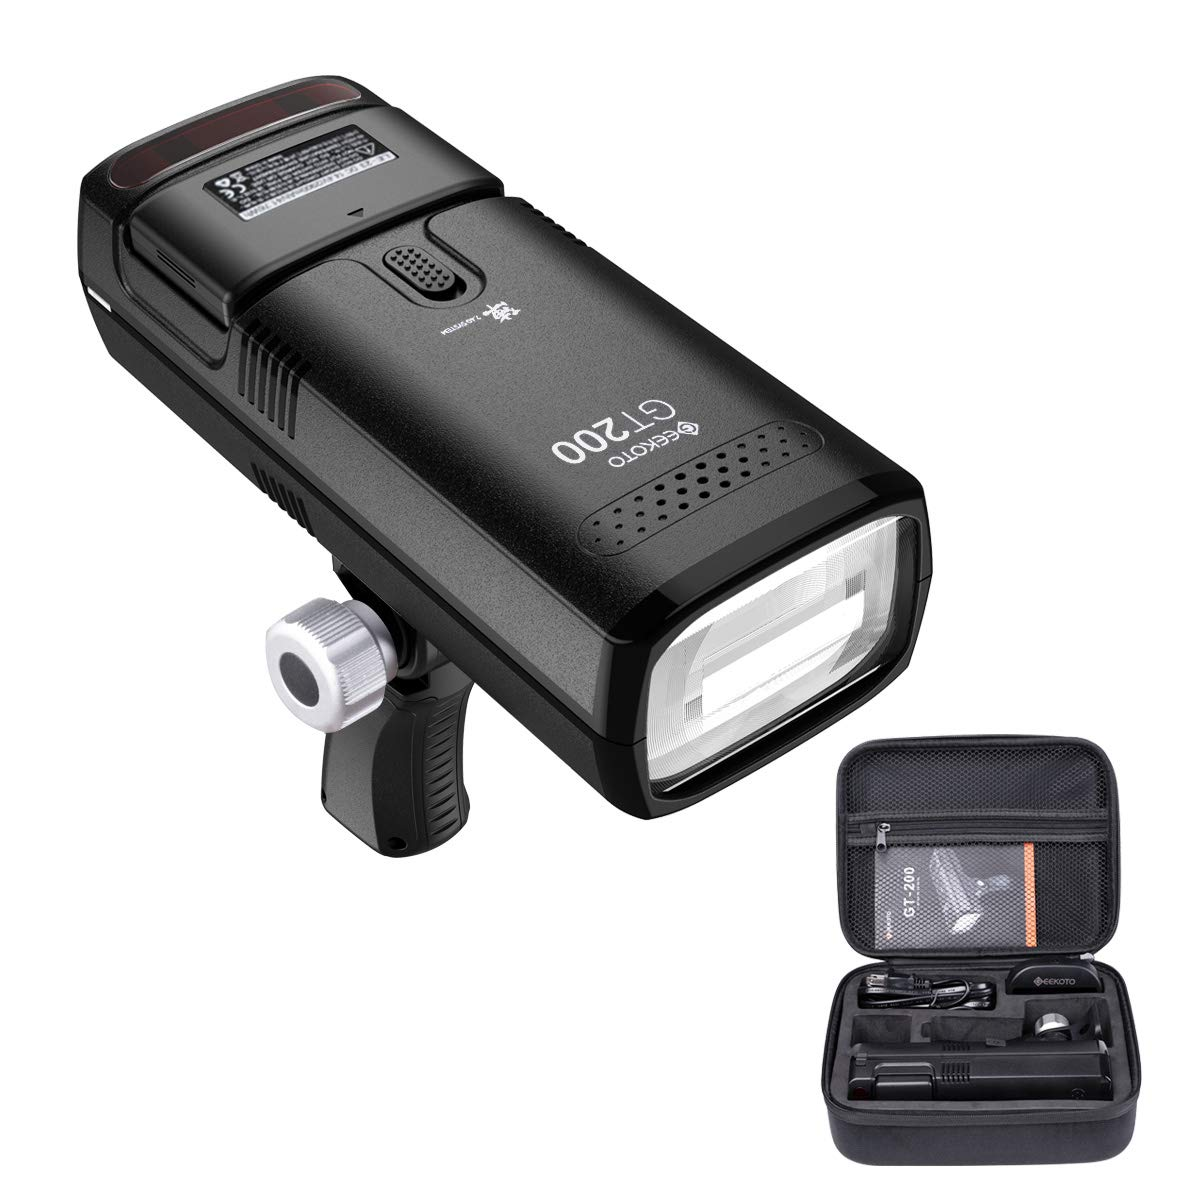 GEEKOTO Flash Speedlite 200W TTL 2.4G Flash Strobe Light 1/8000 HSS Monolight with 2900mAh Lithium Battery and Provide 500 Flashes in 0.01-2.1 sec by GEEKOTO